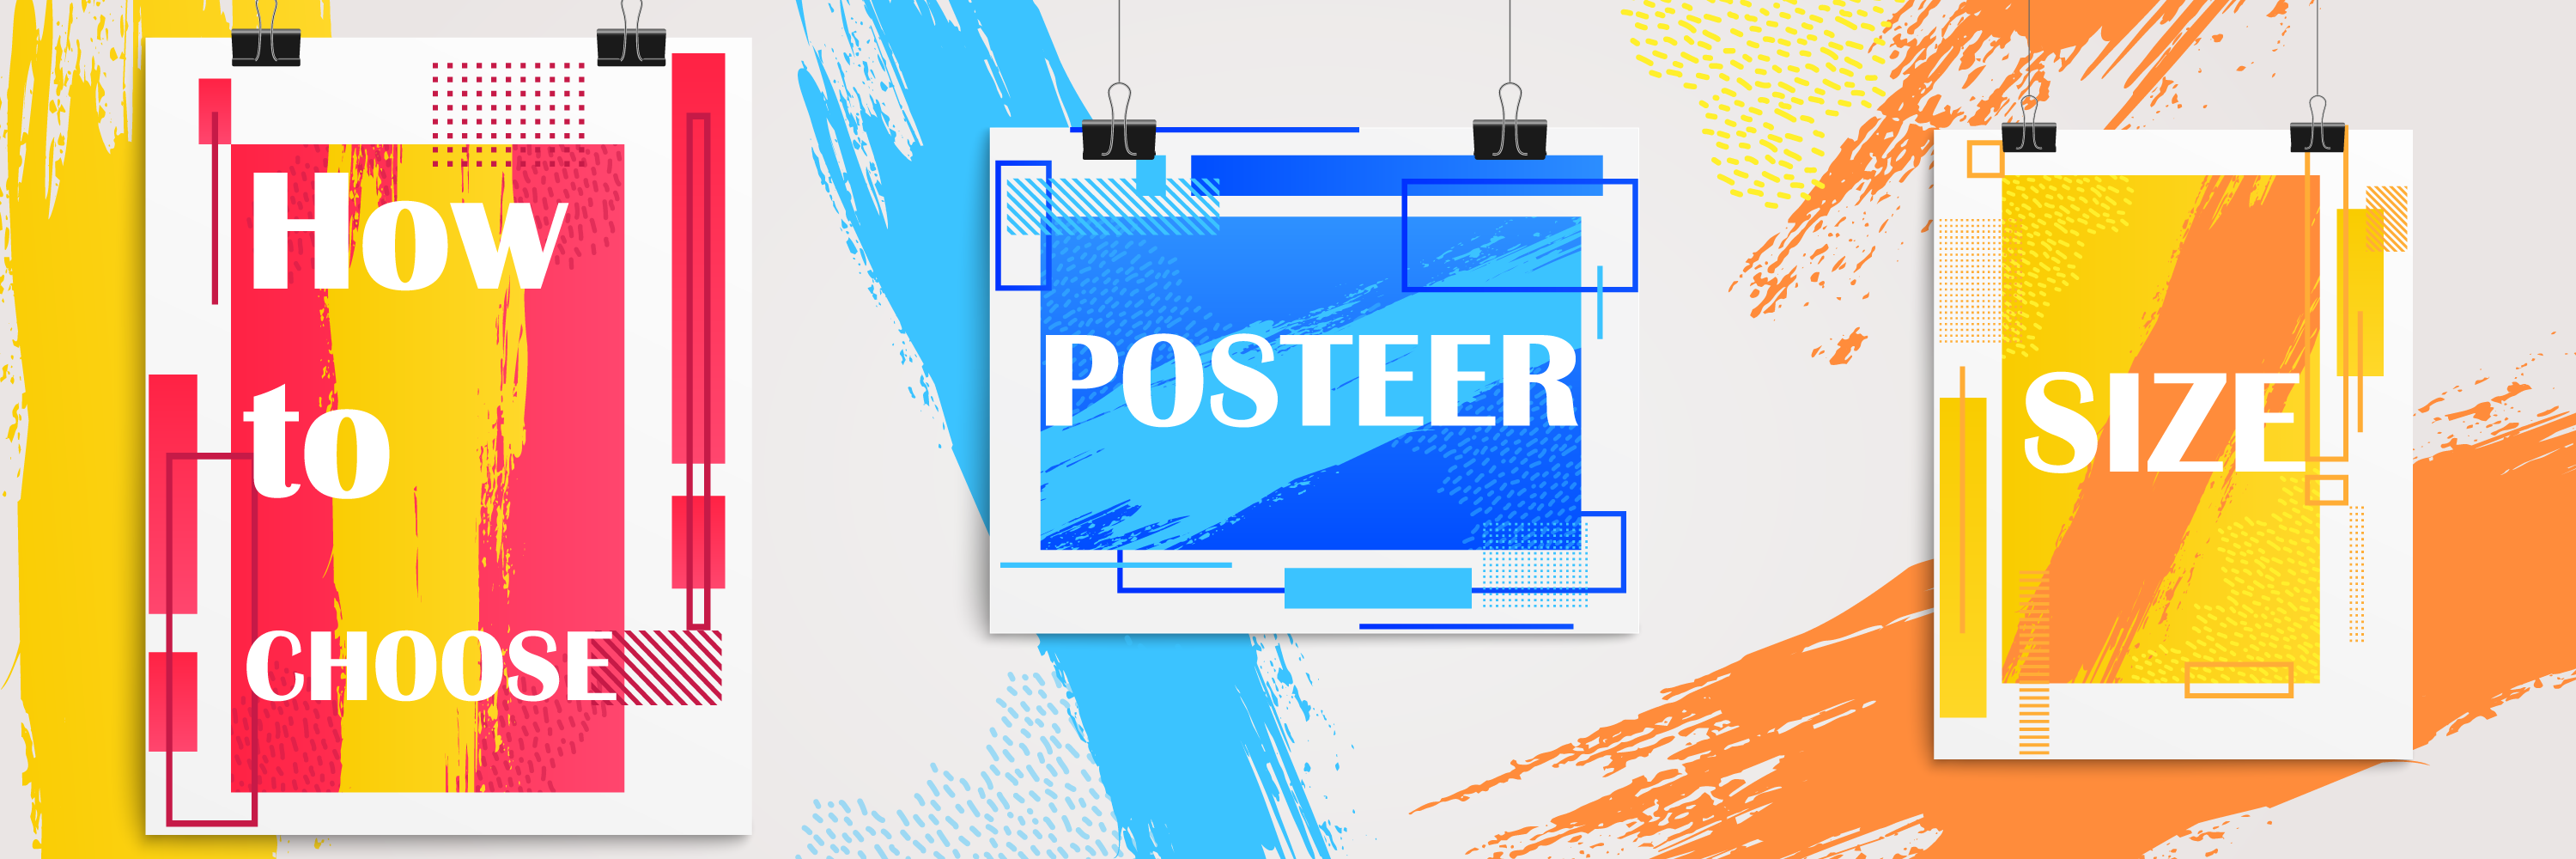 standard poster size